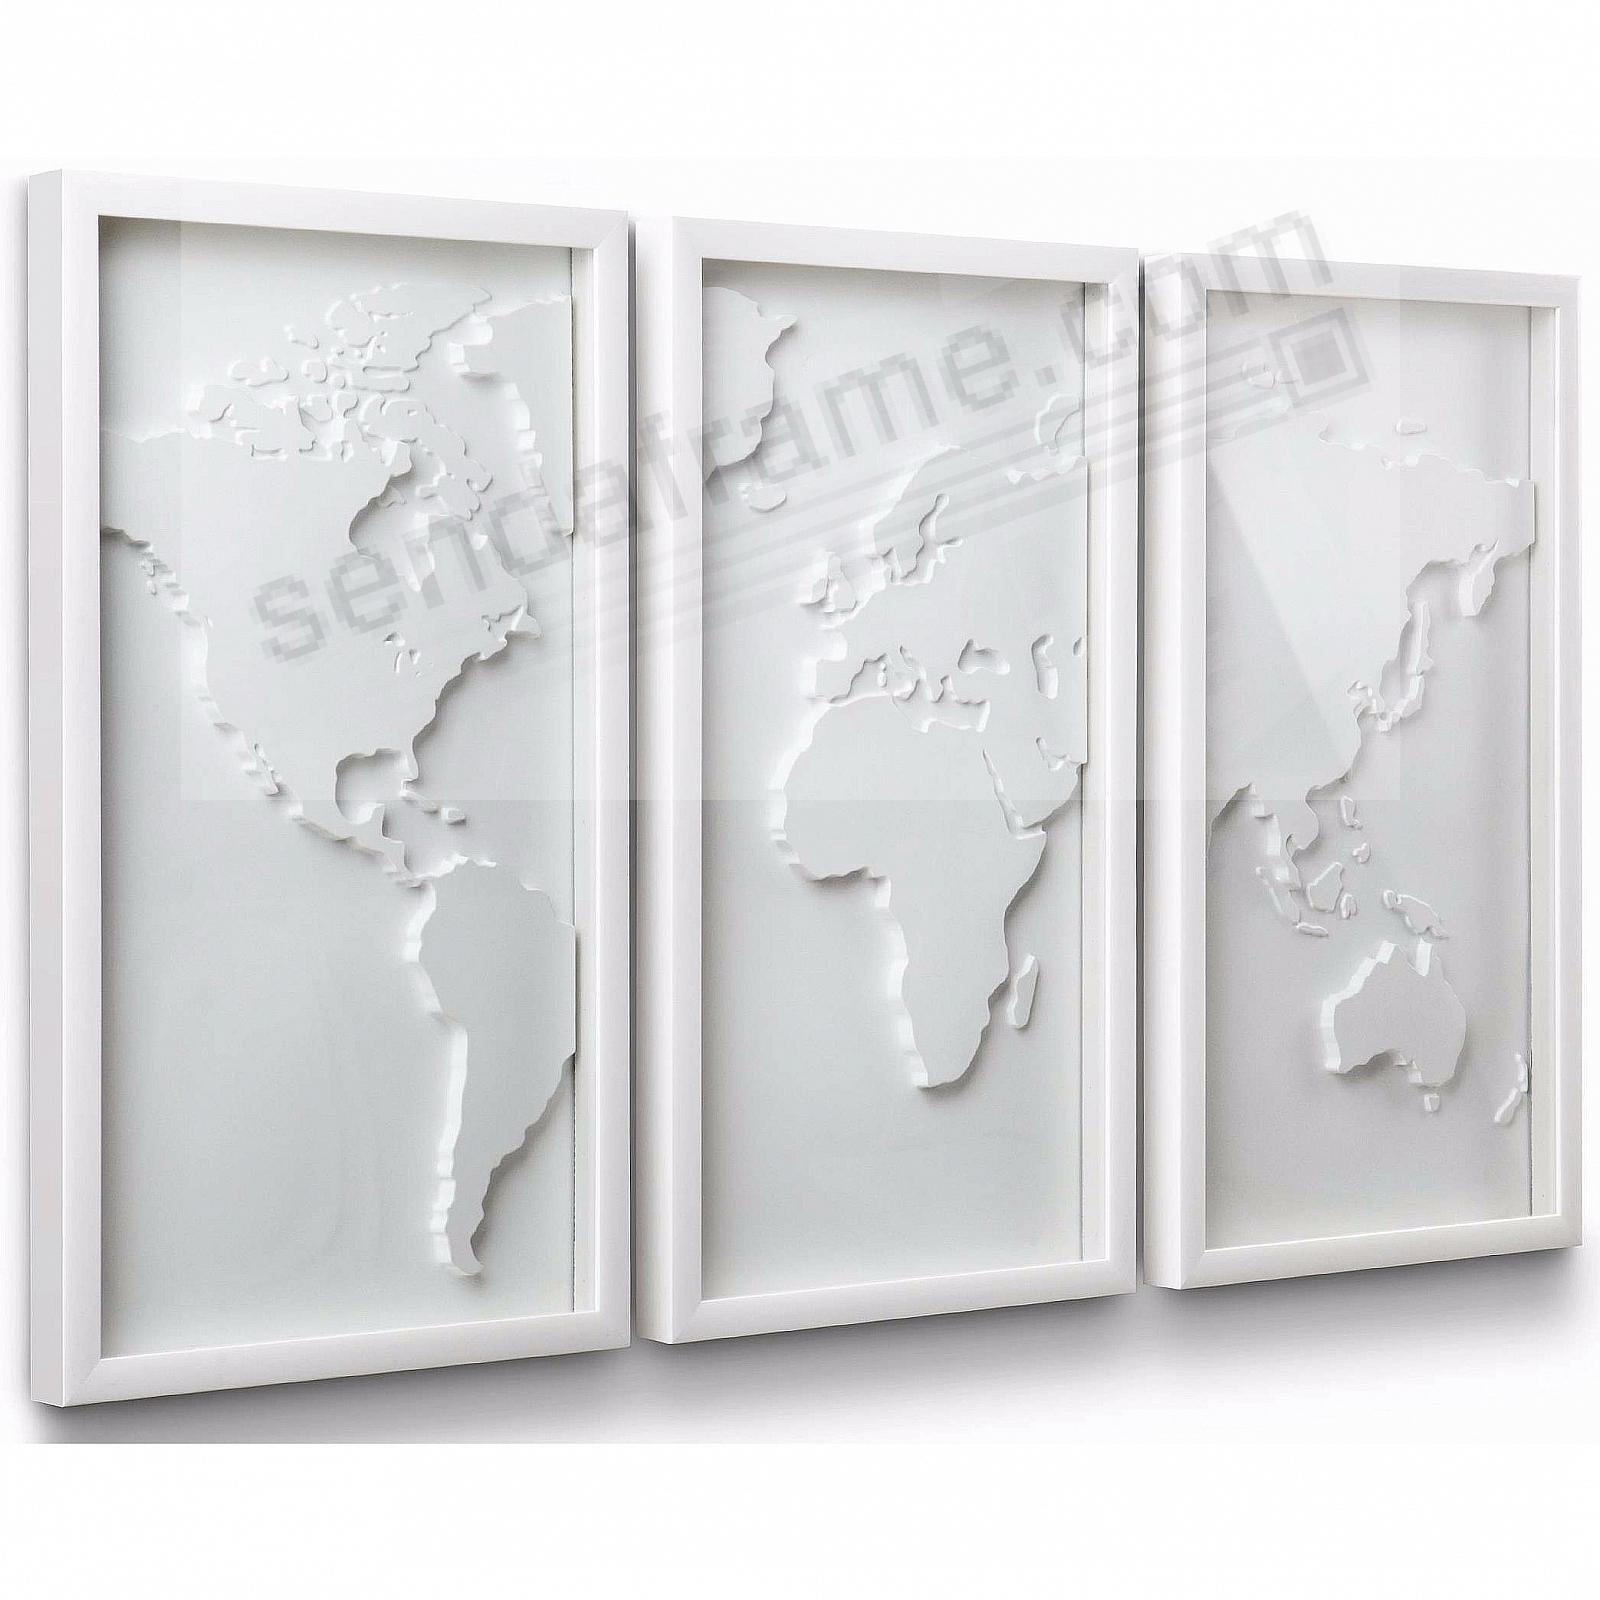 The original mapster 3 pc white relief world map by umbra picture the original mapster 3 pc white relief world map by umbra gumiabroncs Images